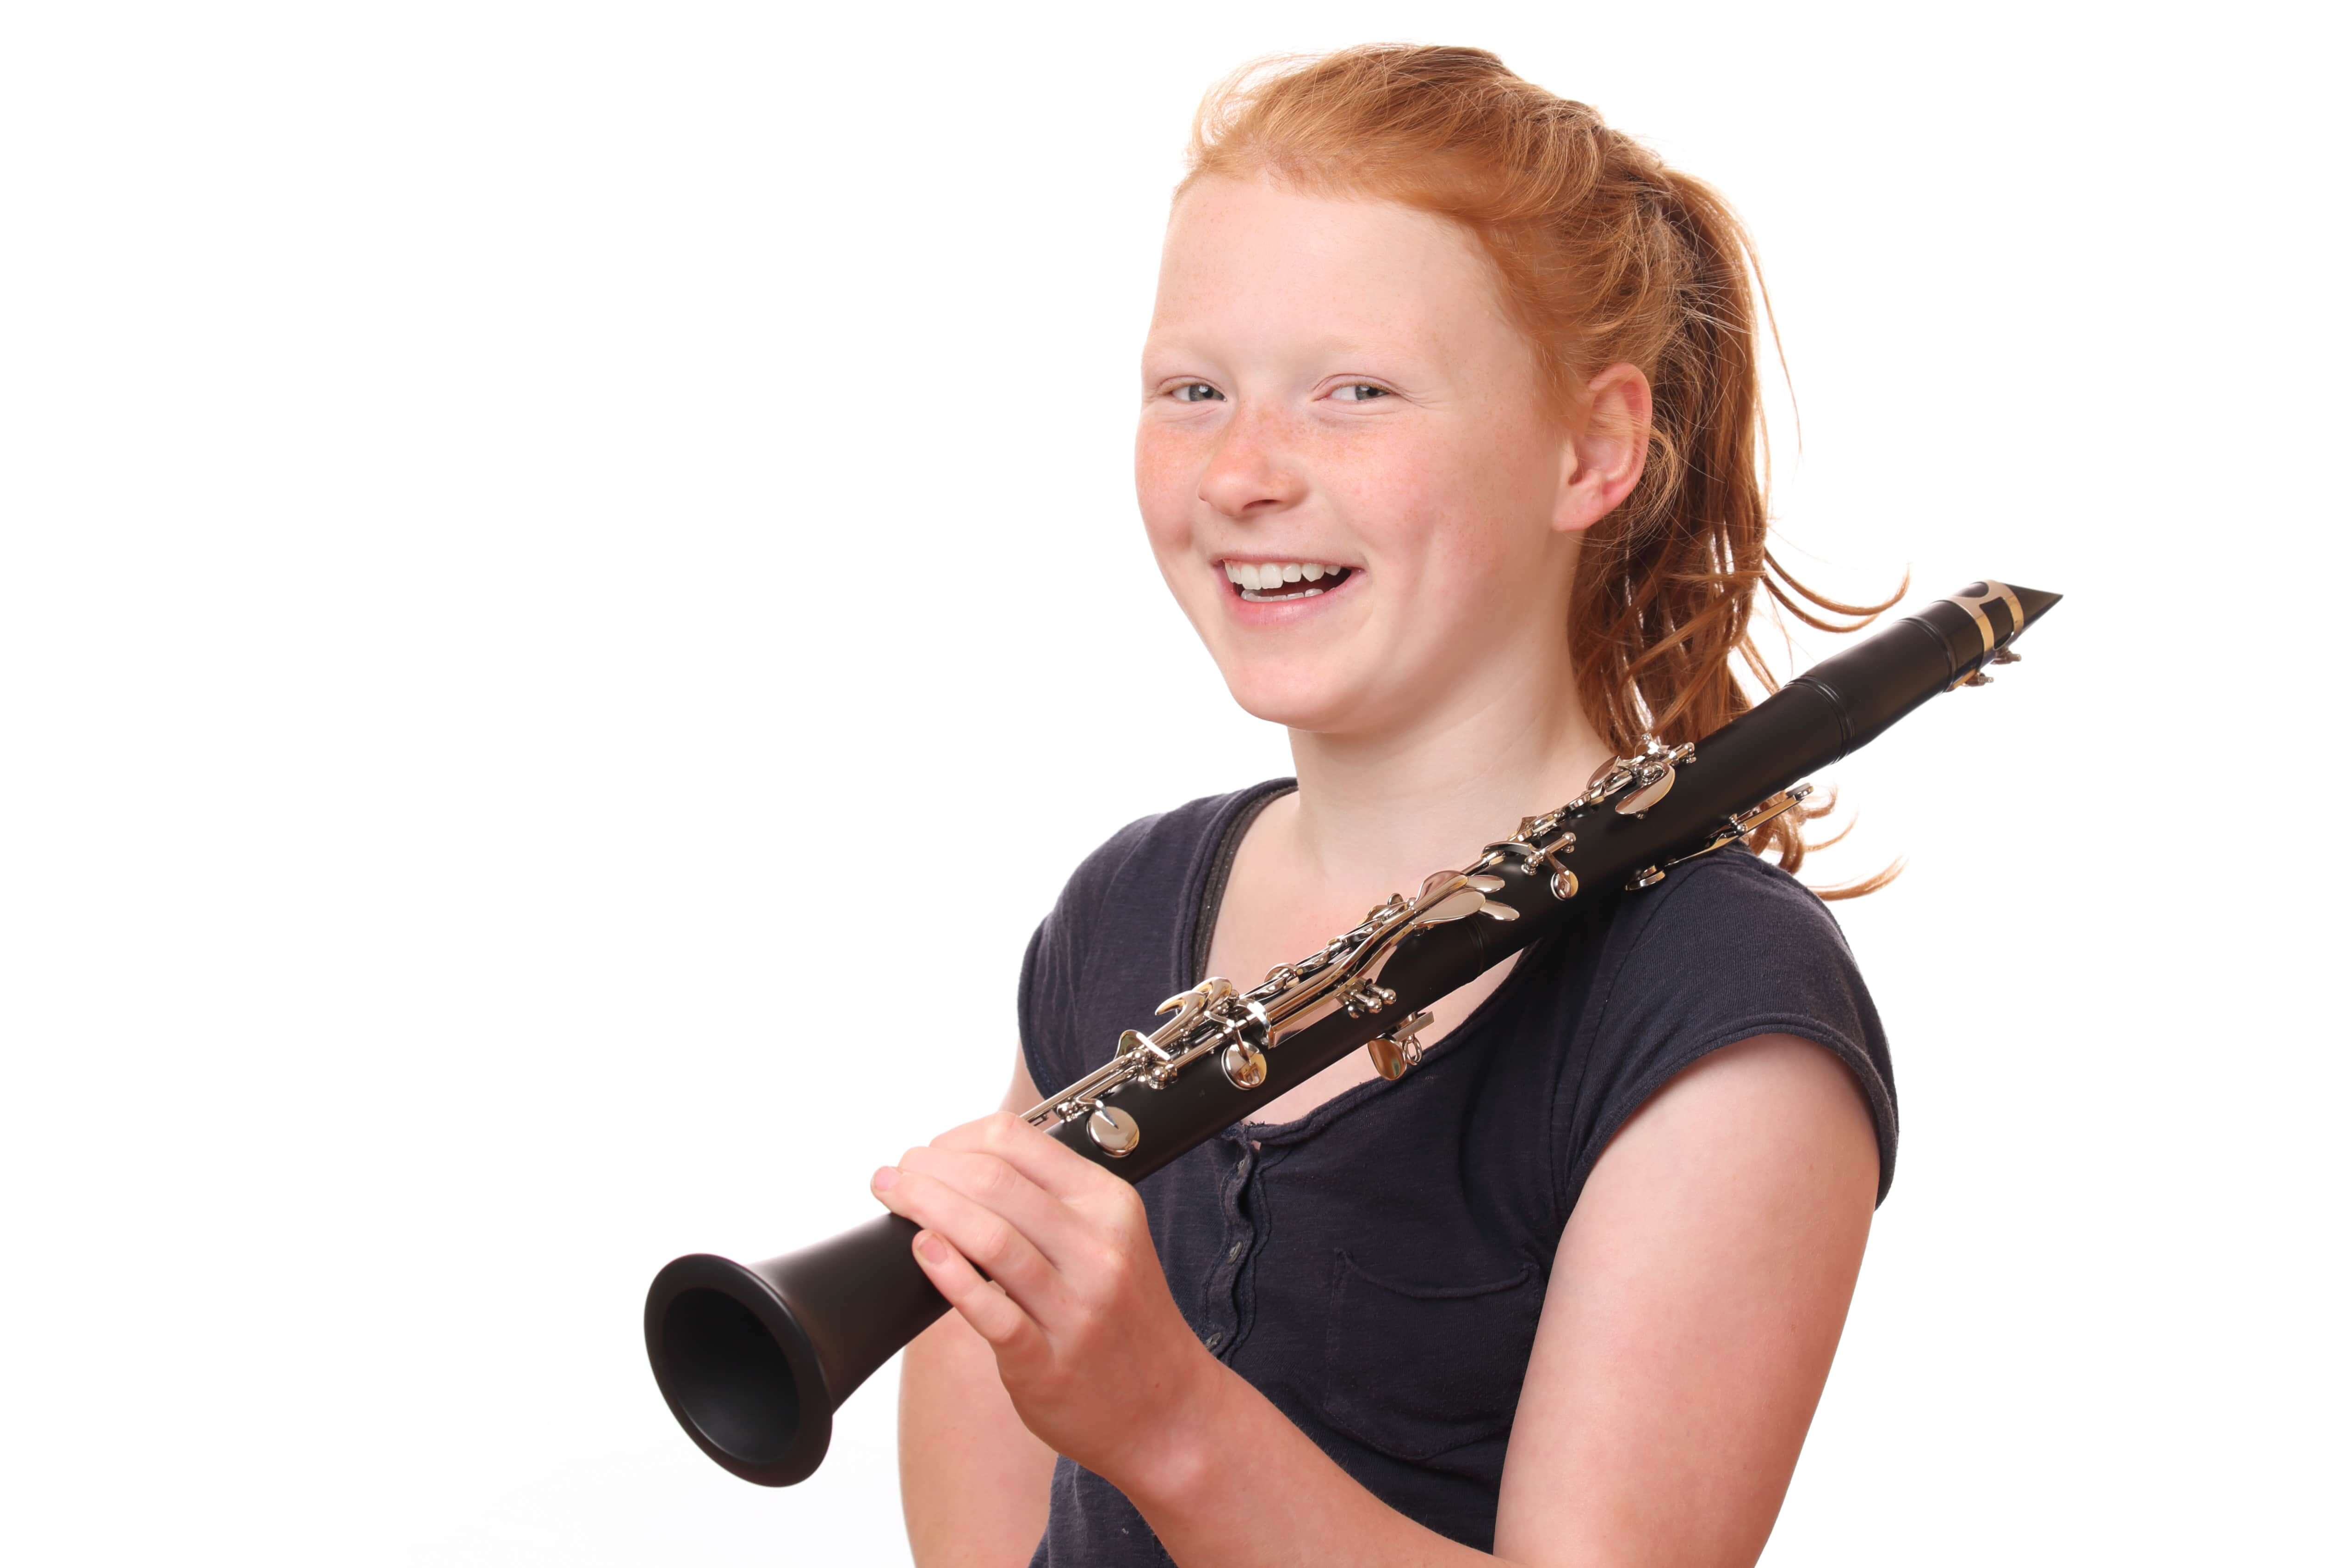 Student smiling while playing Clarinet